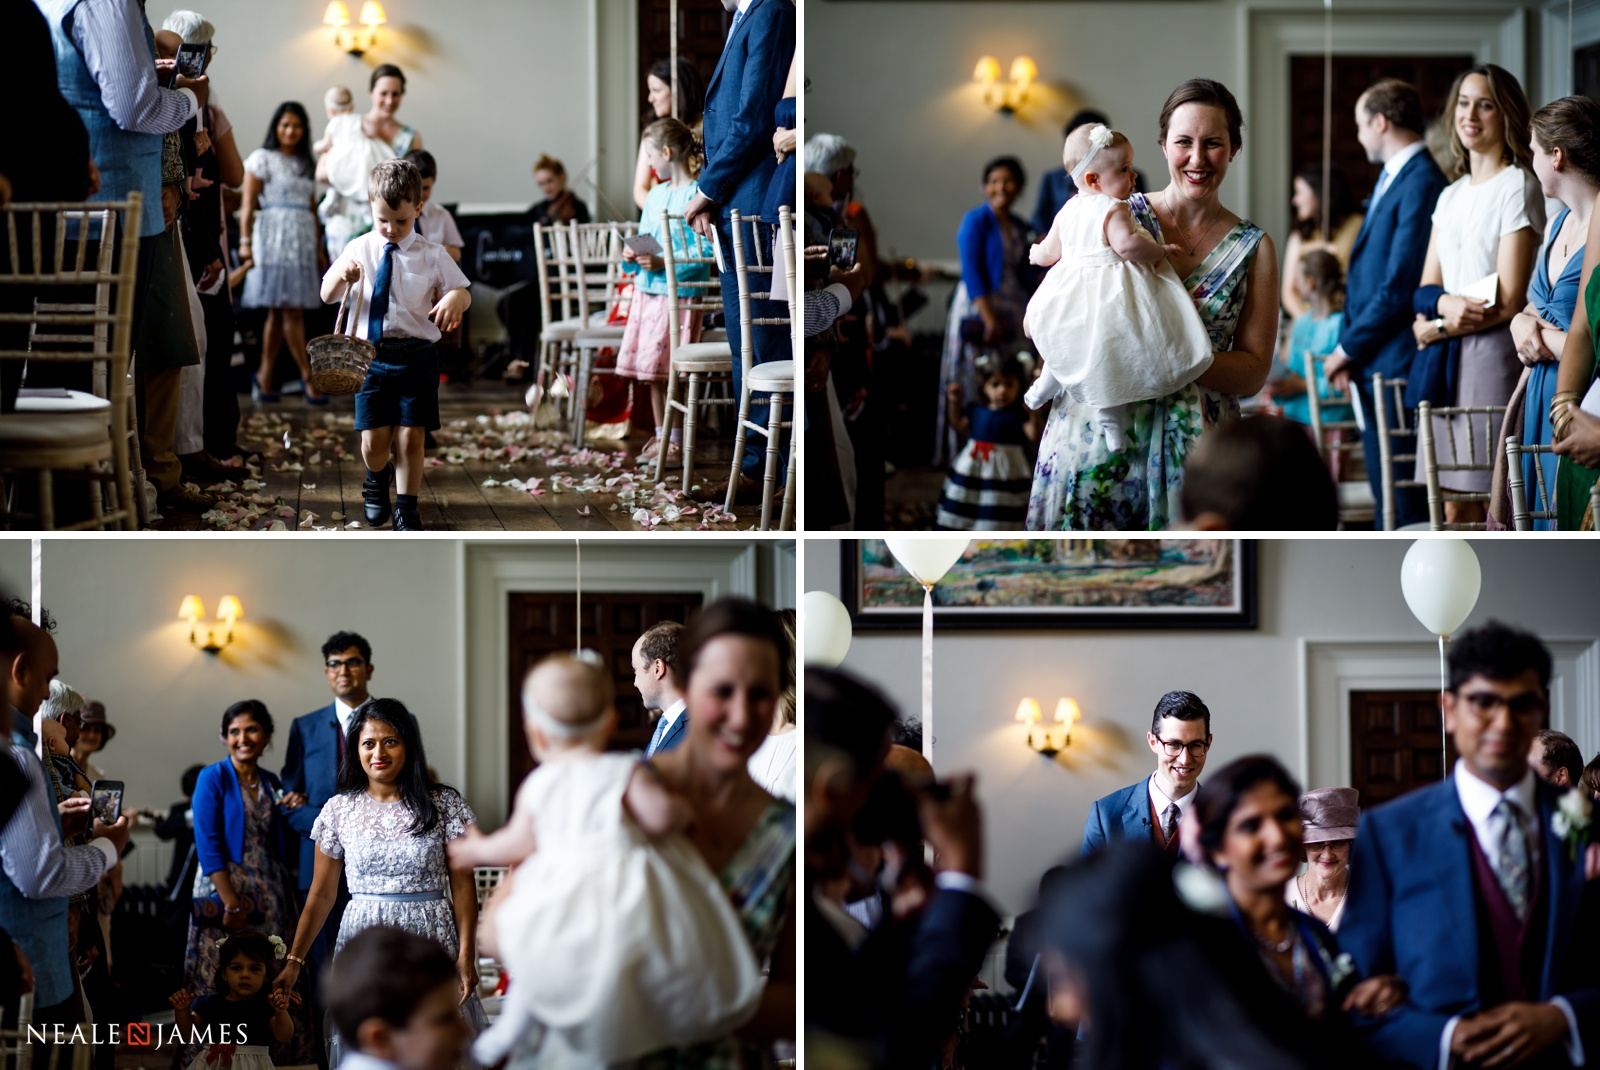 Pictures of a wedding ceremony starting at Elmore Court in Glos